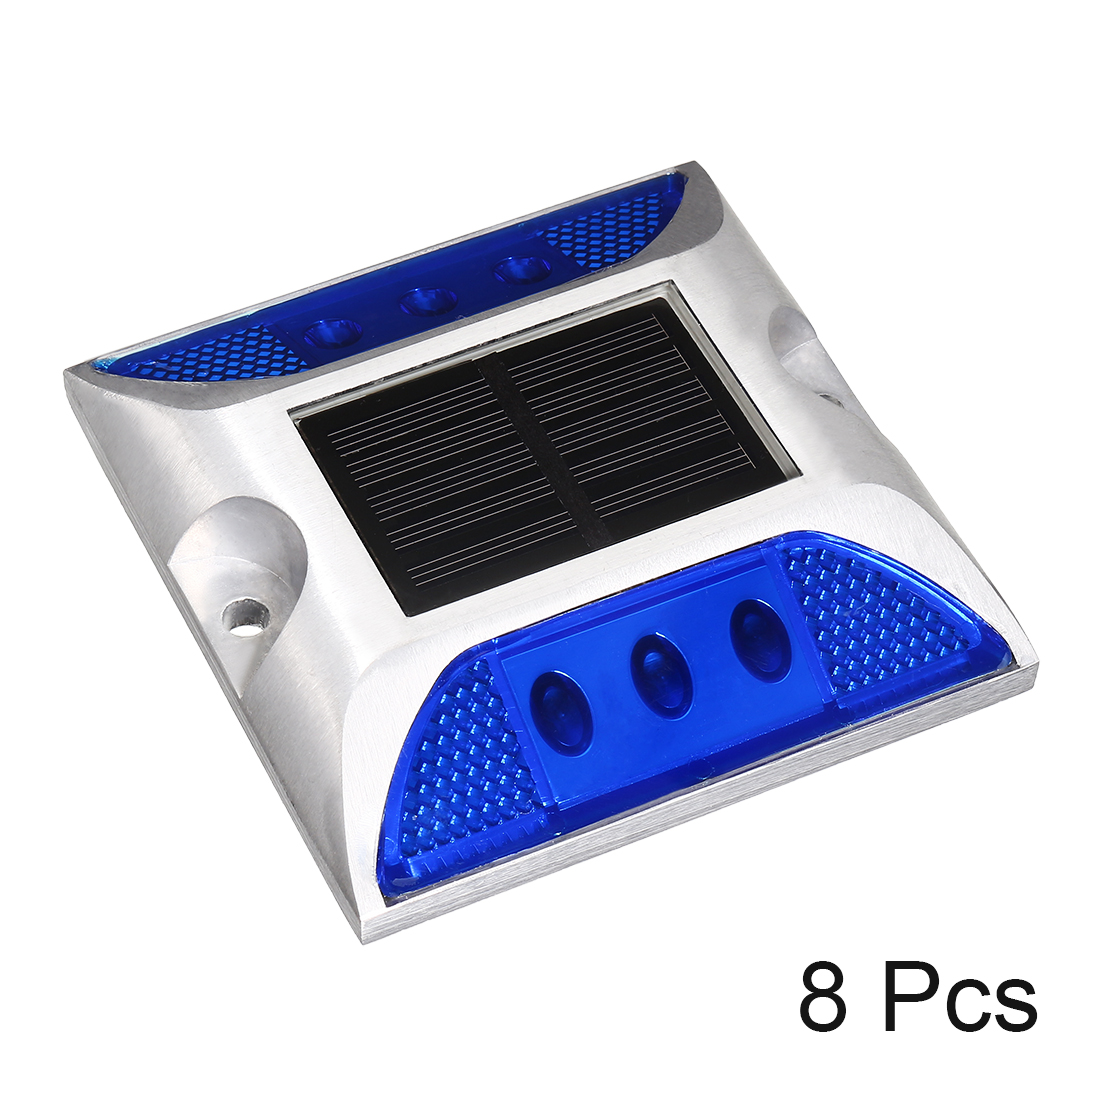 Unique Bargains 8pcs  Solar Road Stud Light Marker Lighting Security Warning Lamp 6LED Blue - image 3 of 4